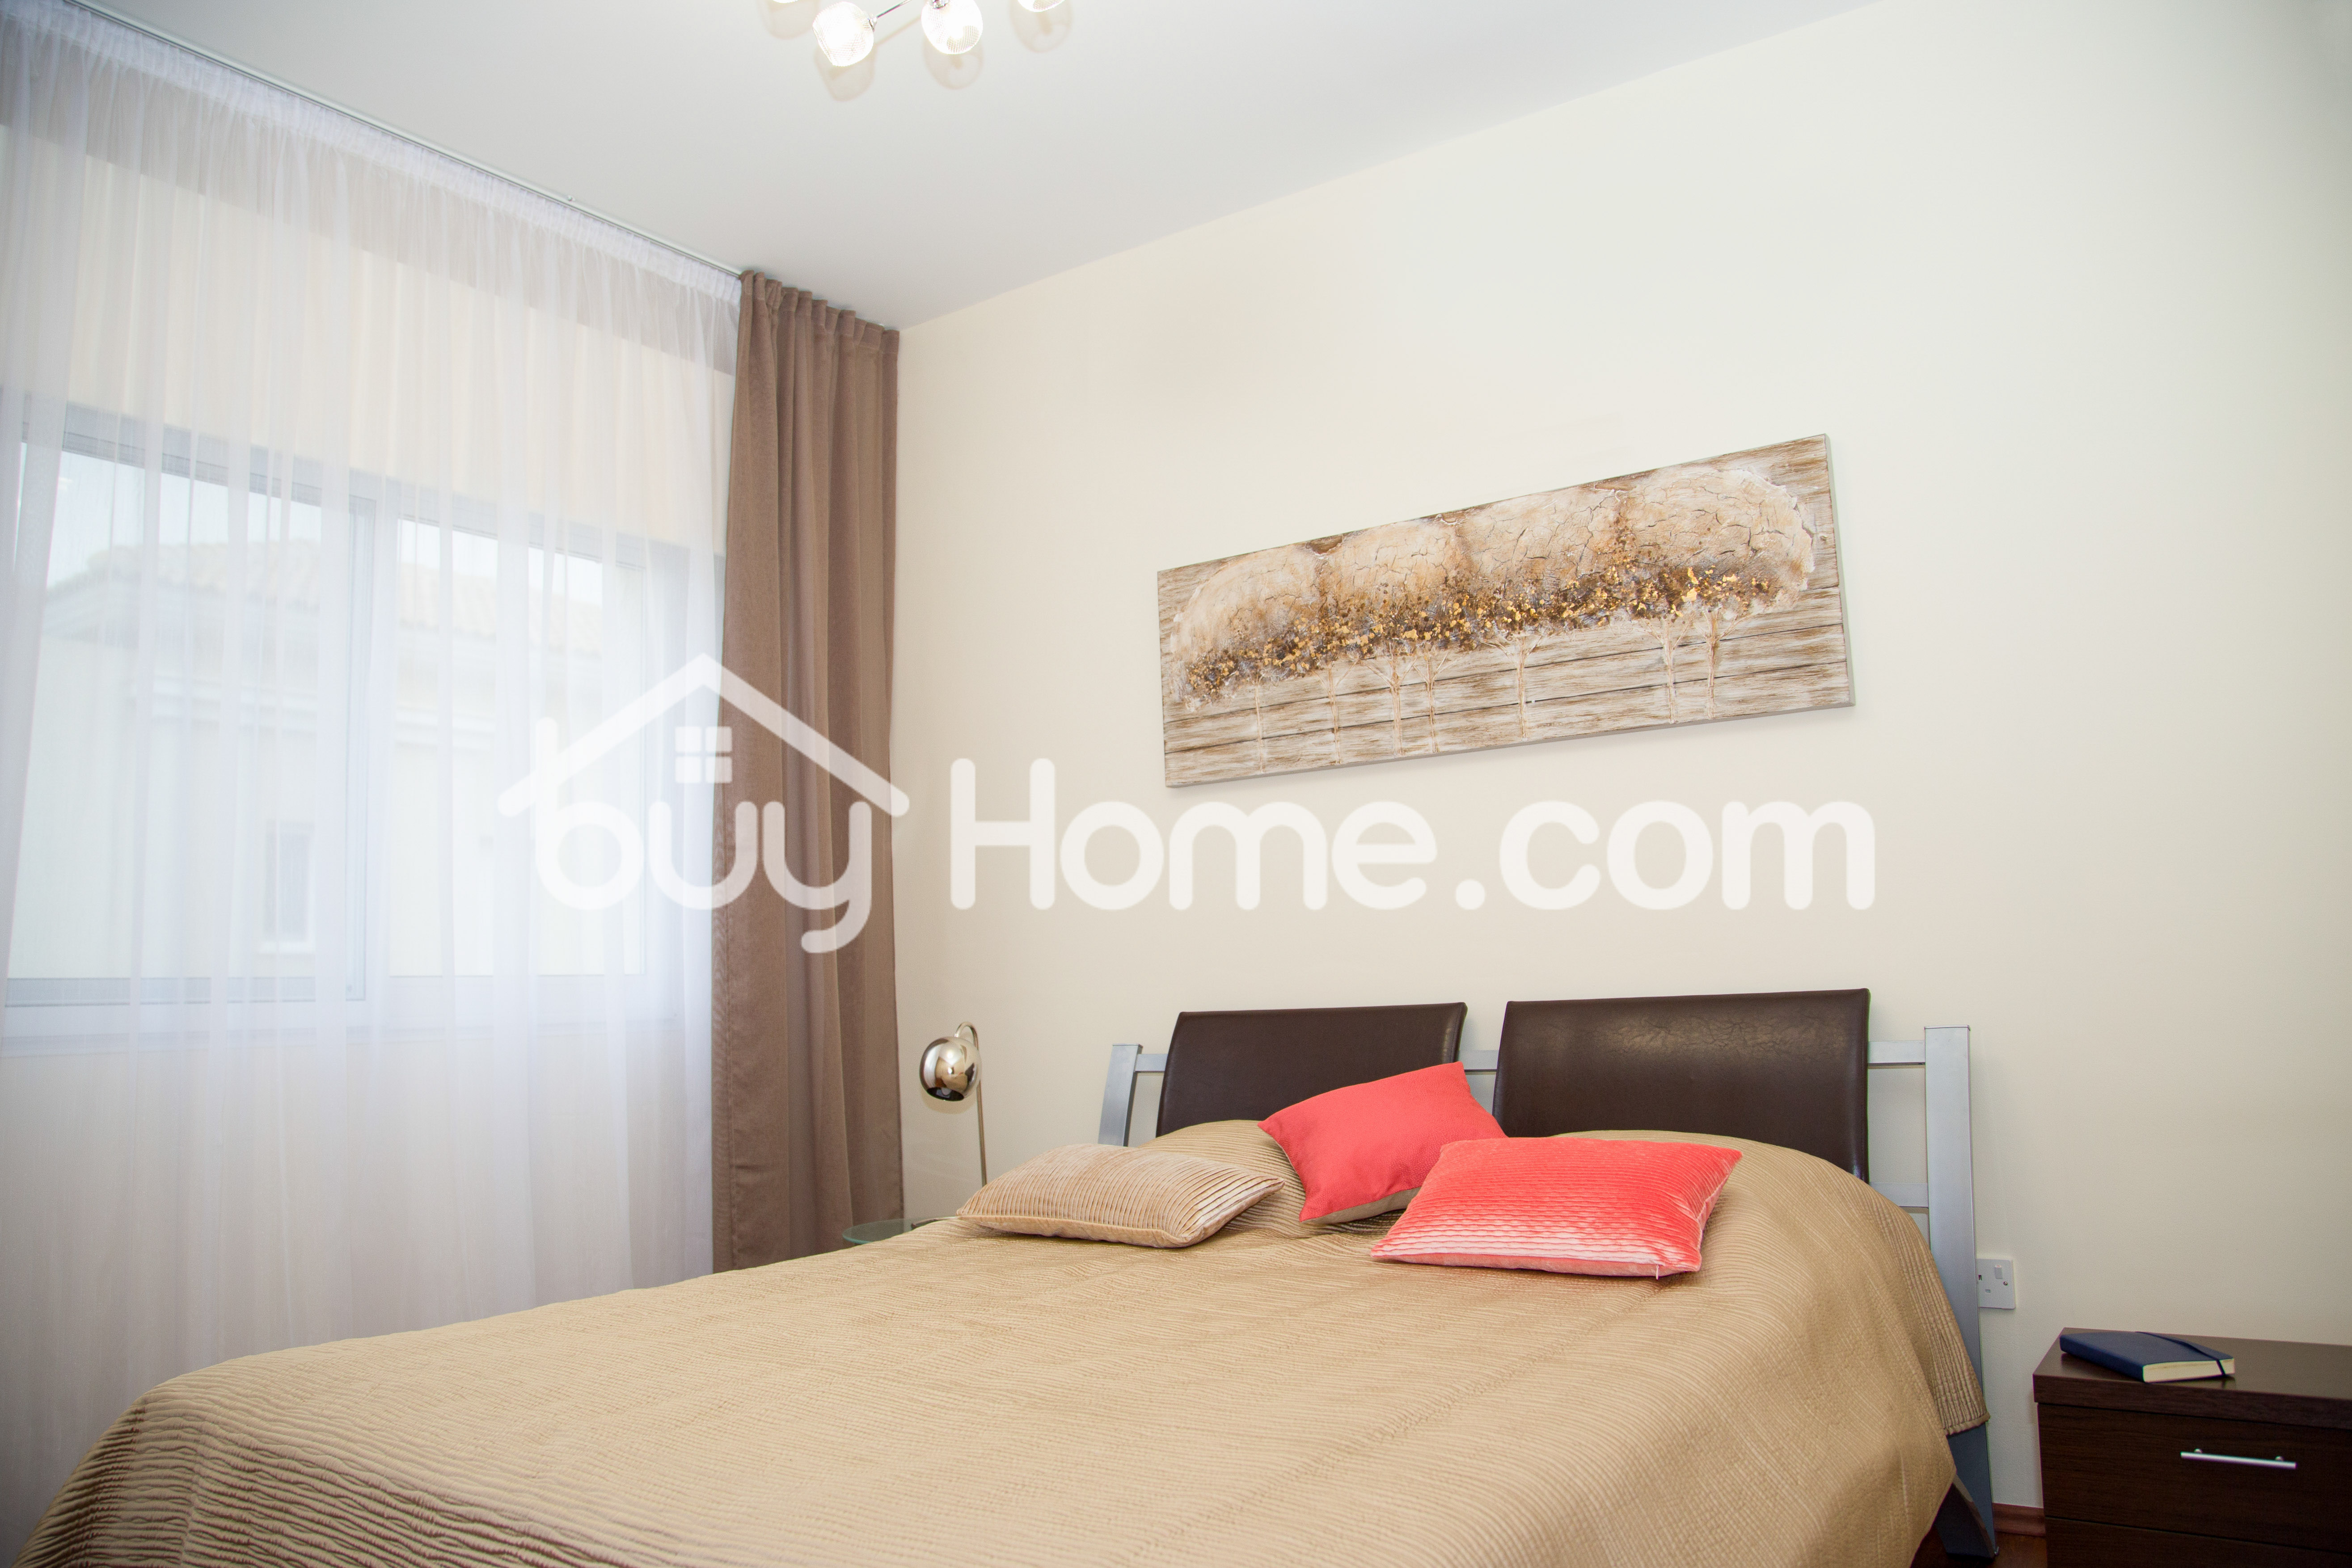 Two Bedroom Flat For Rent   BuyHome